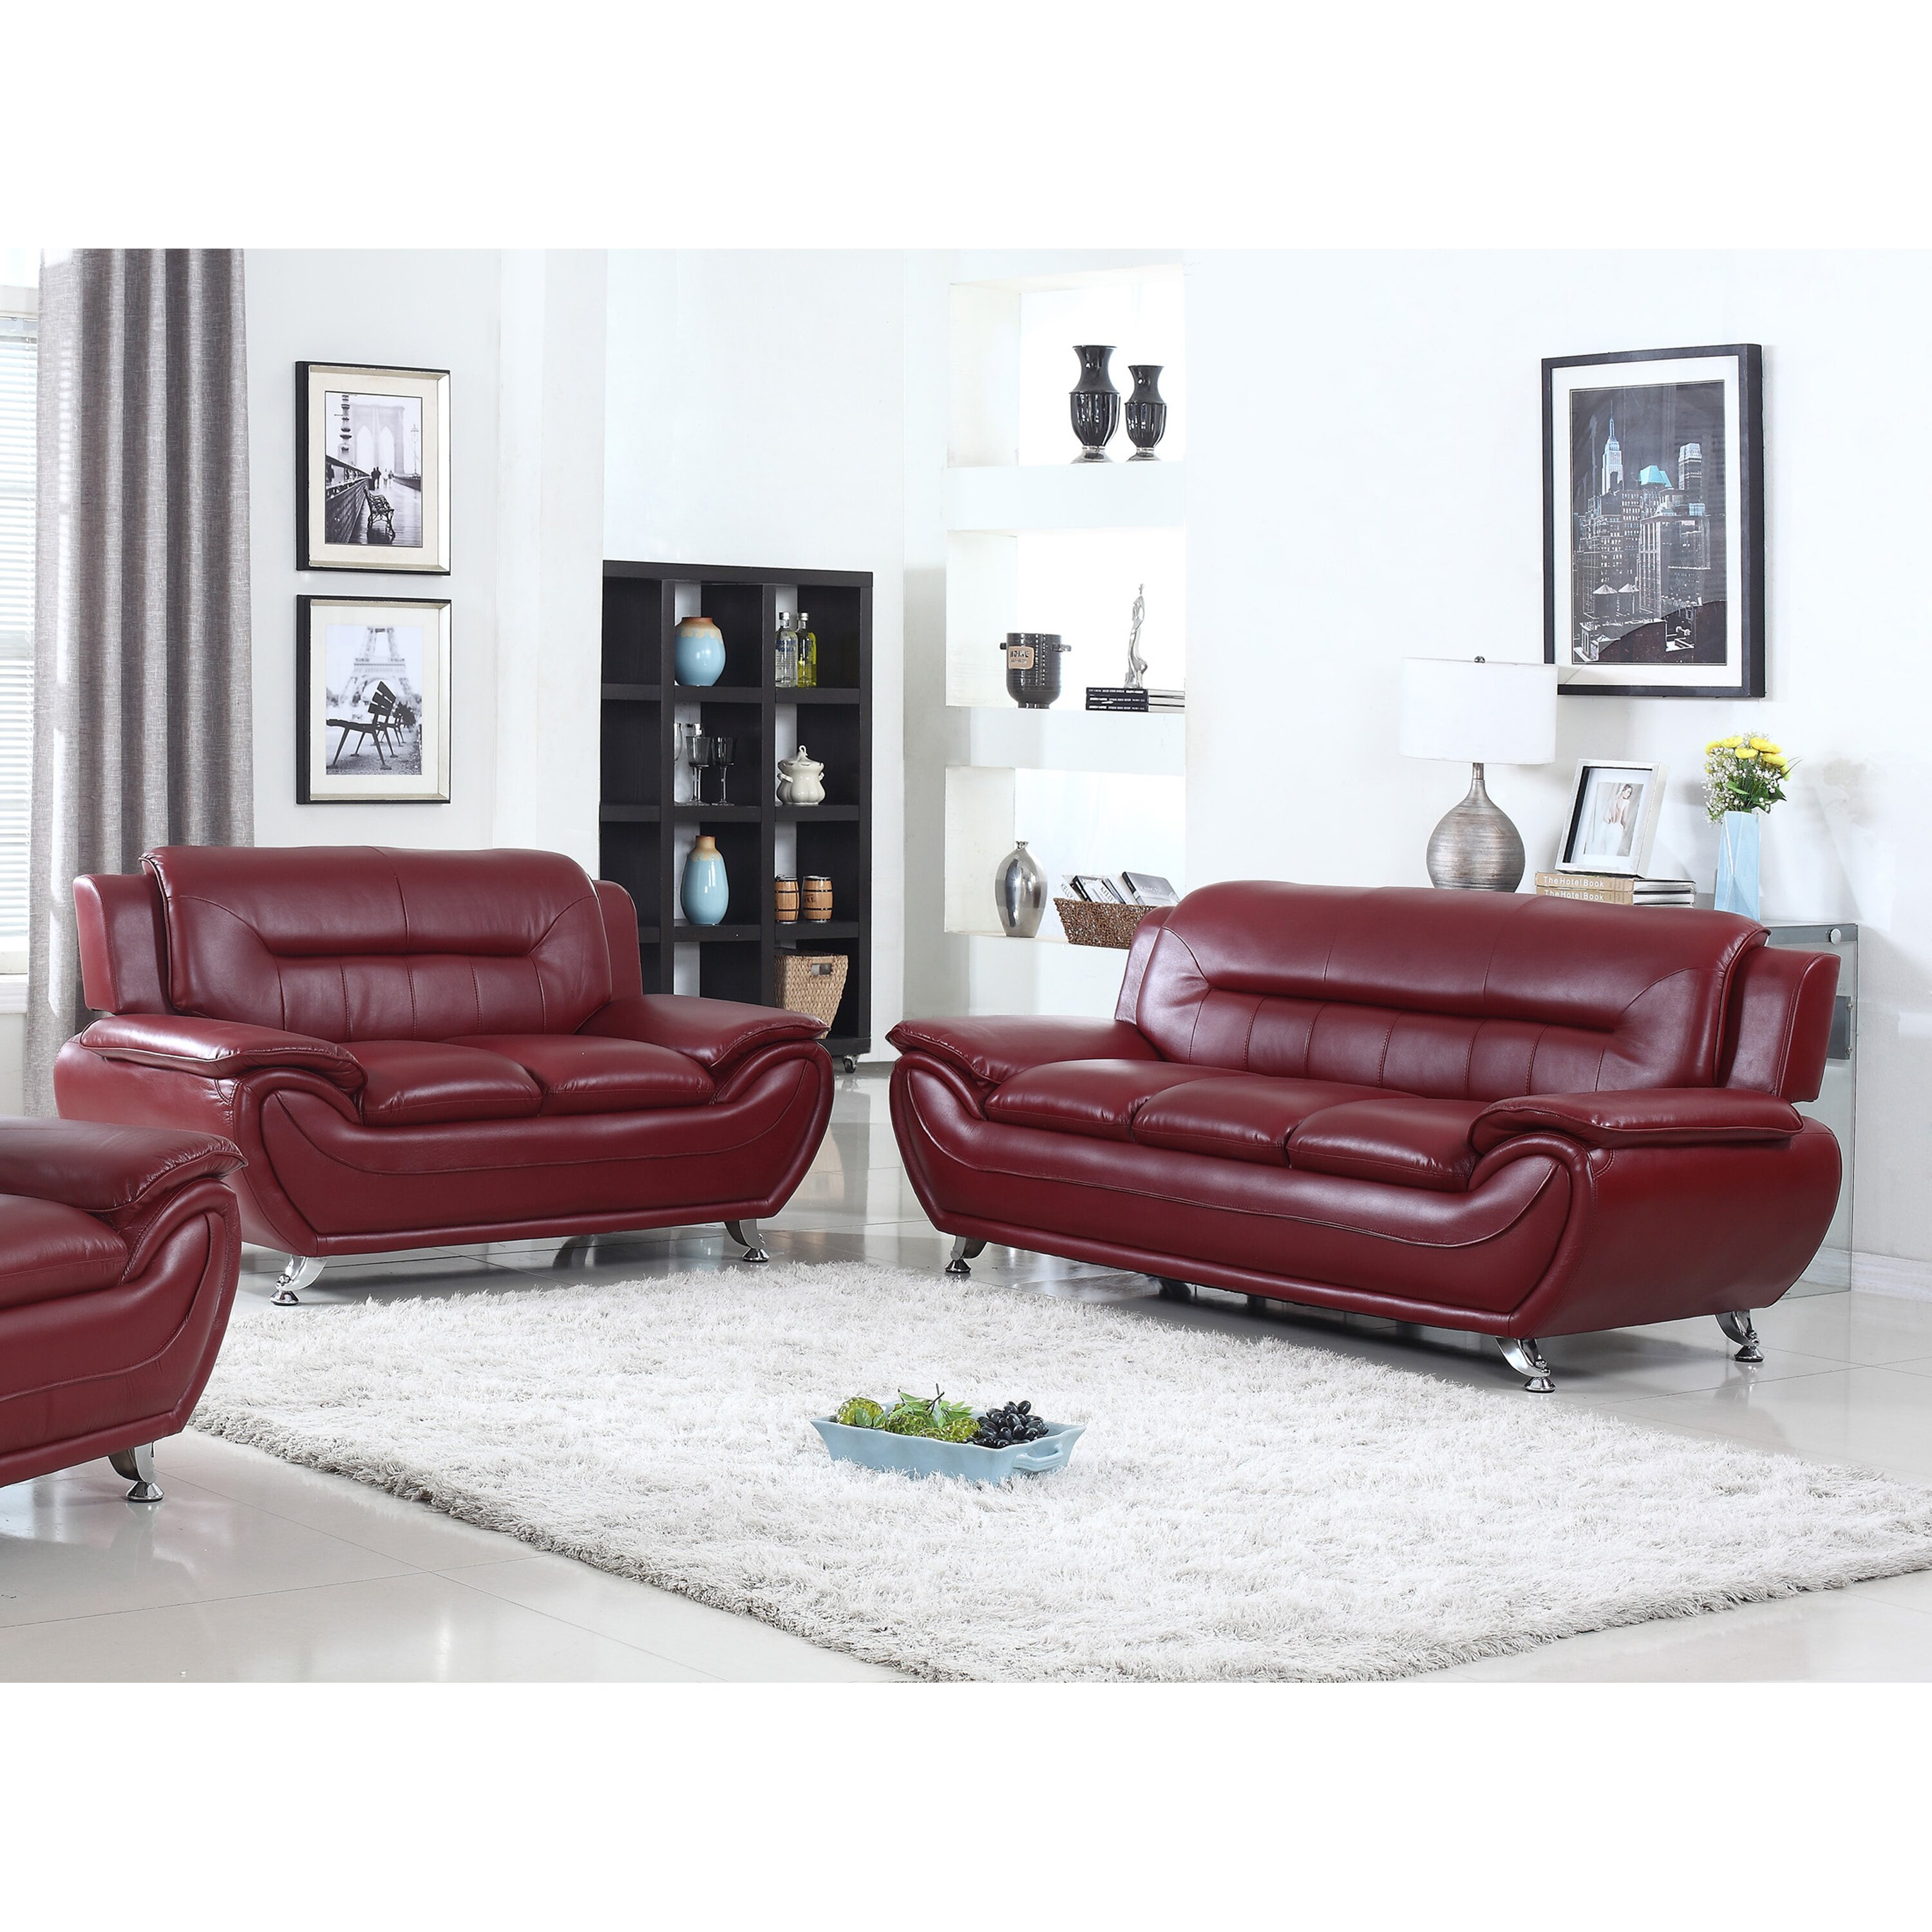 Living Room Sofa And Loveseat Sets Living In Style Sophie Modern Living Room Sofa And Loveseat Set